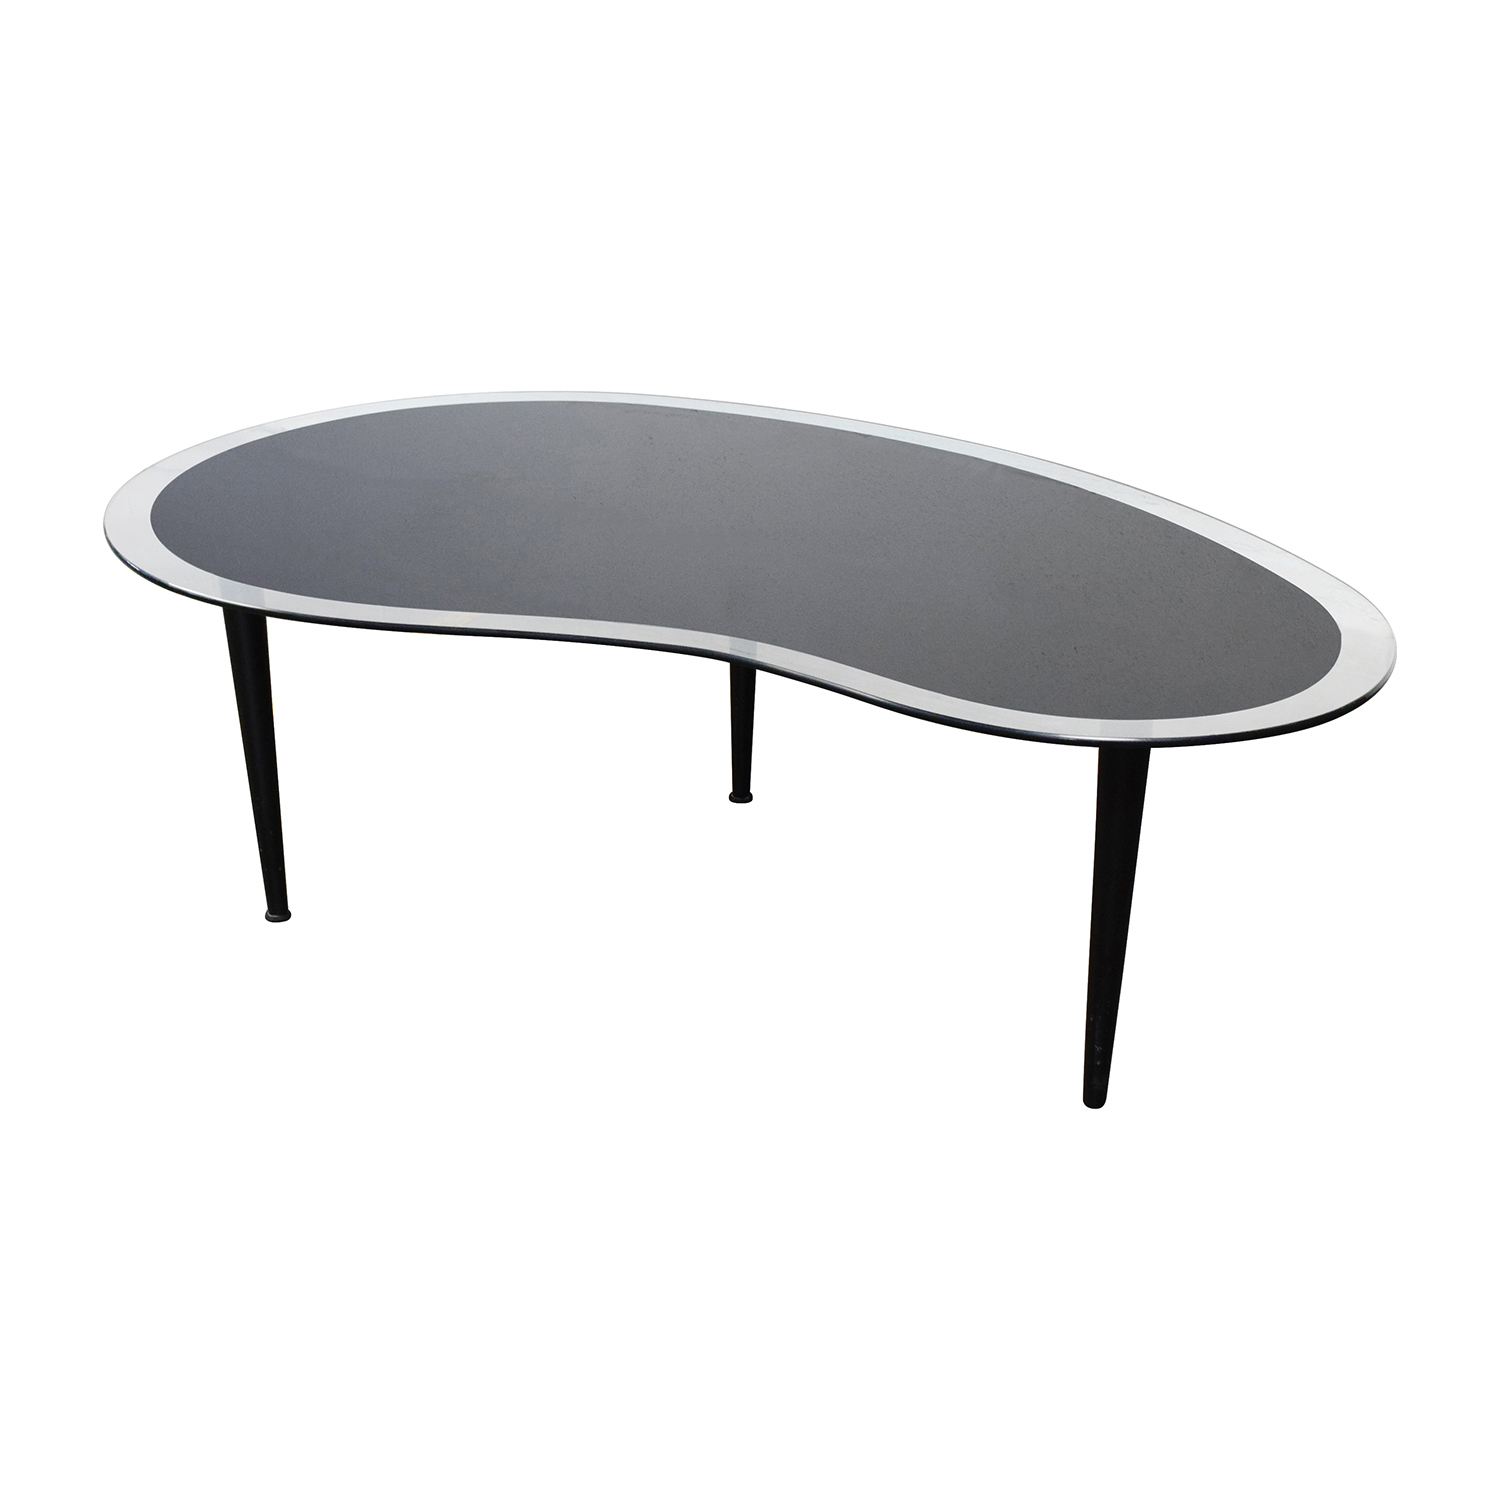 61 off bean shaped black and clear glass coffee table tables Clear coffee table